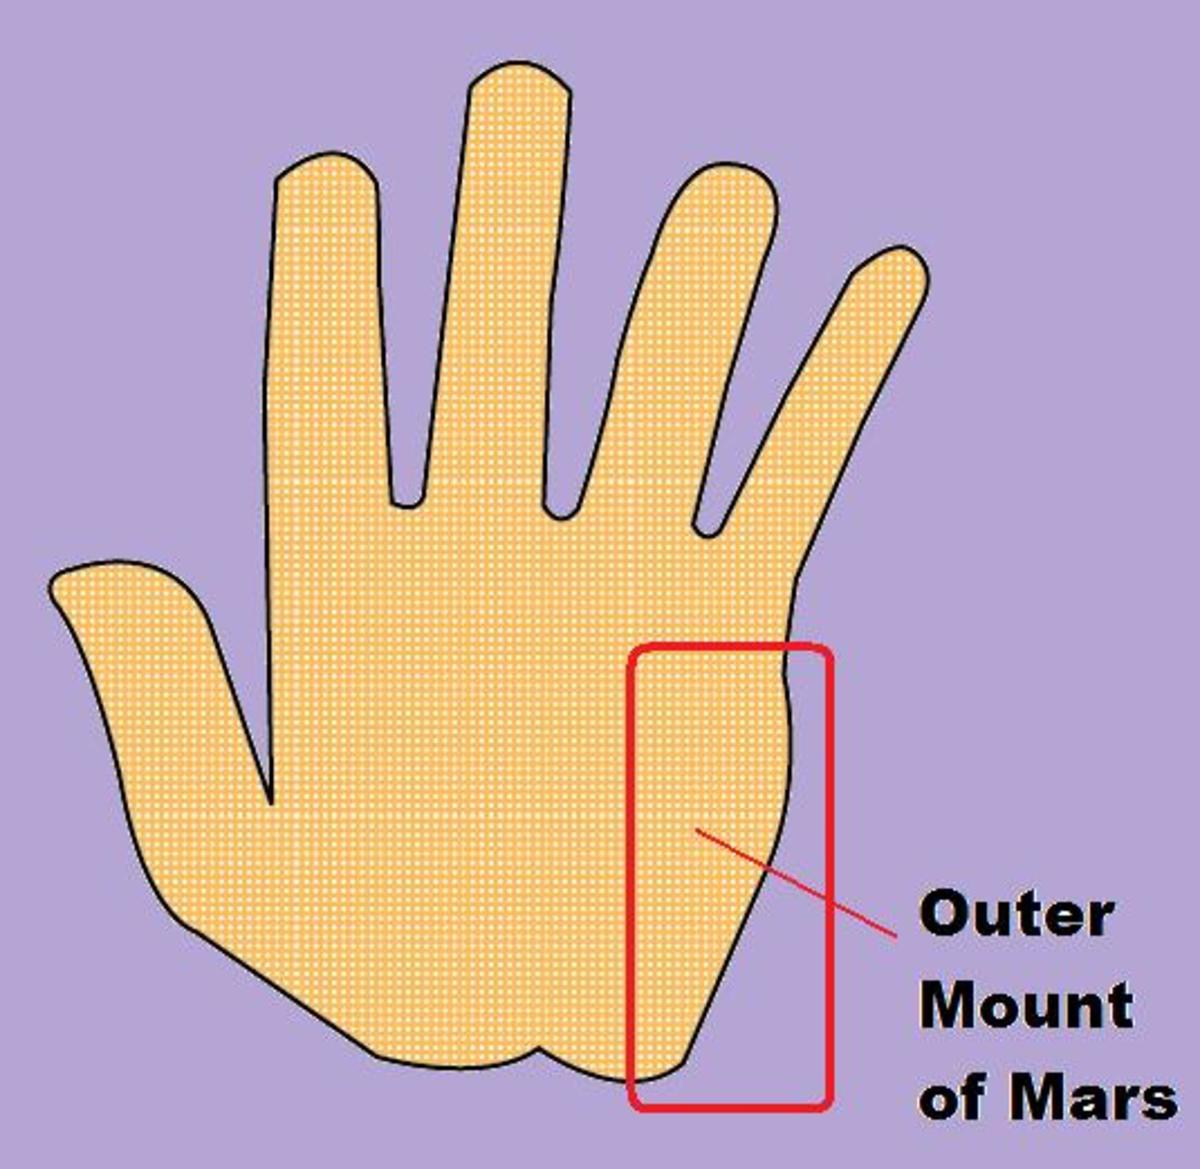 outer mount of mars or percussion in palmistry